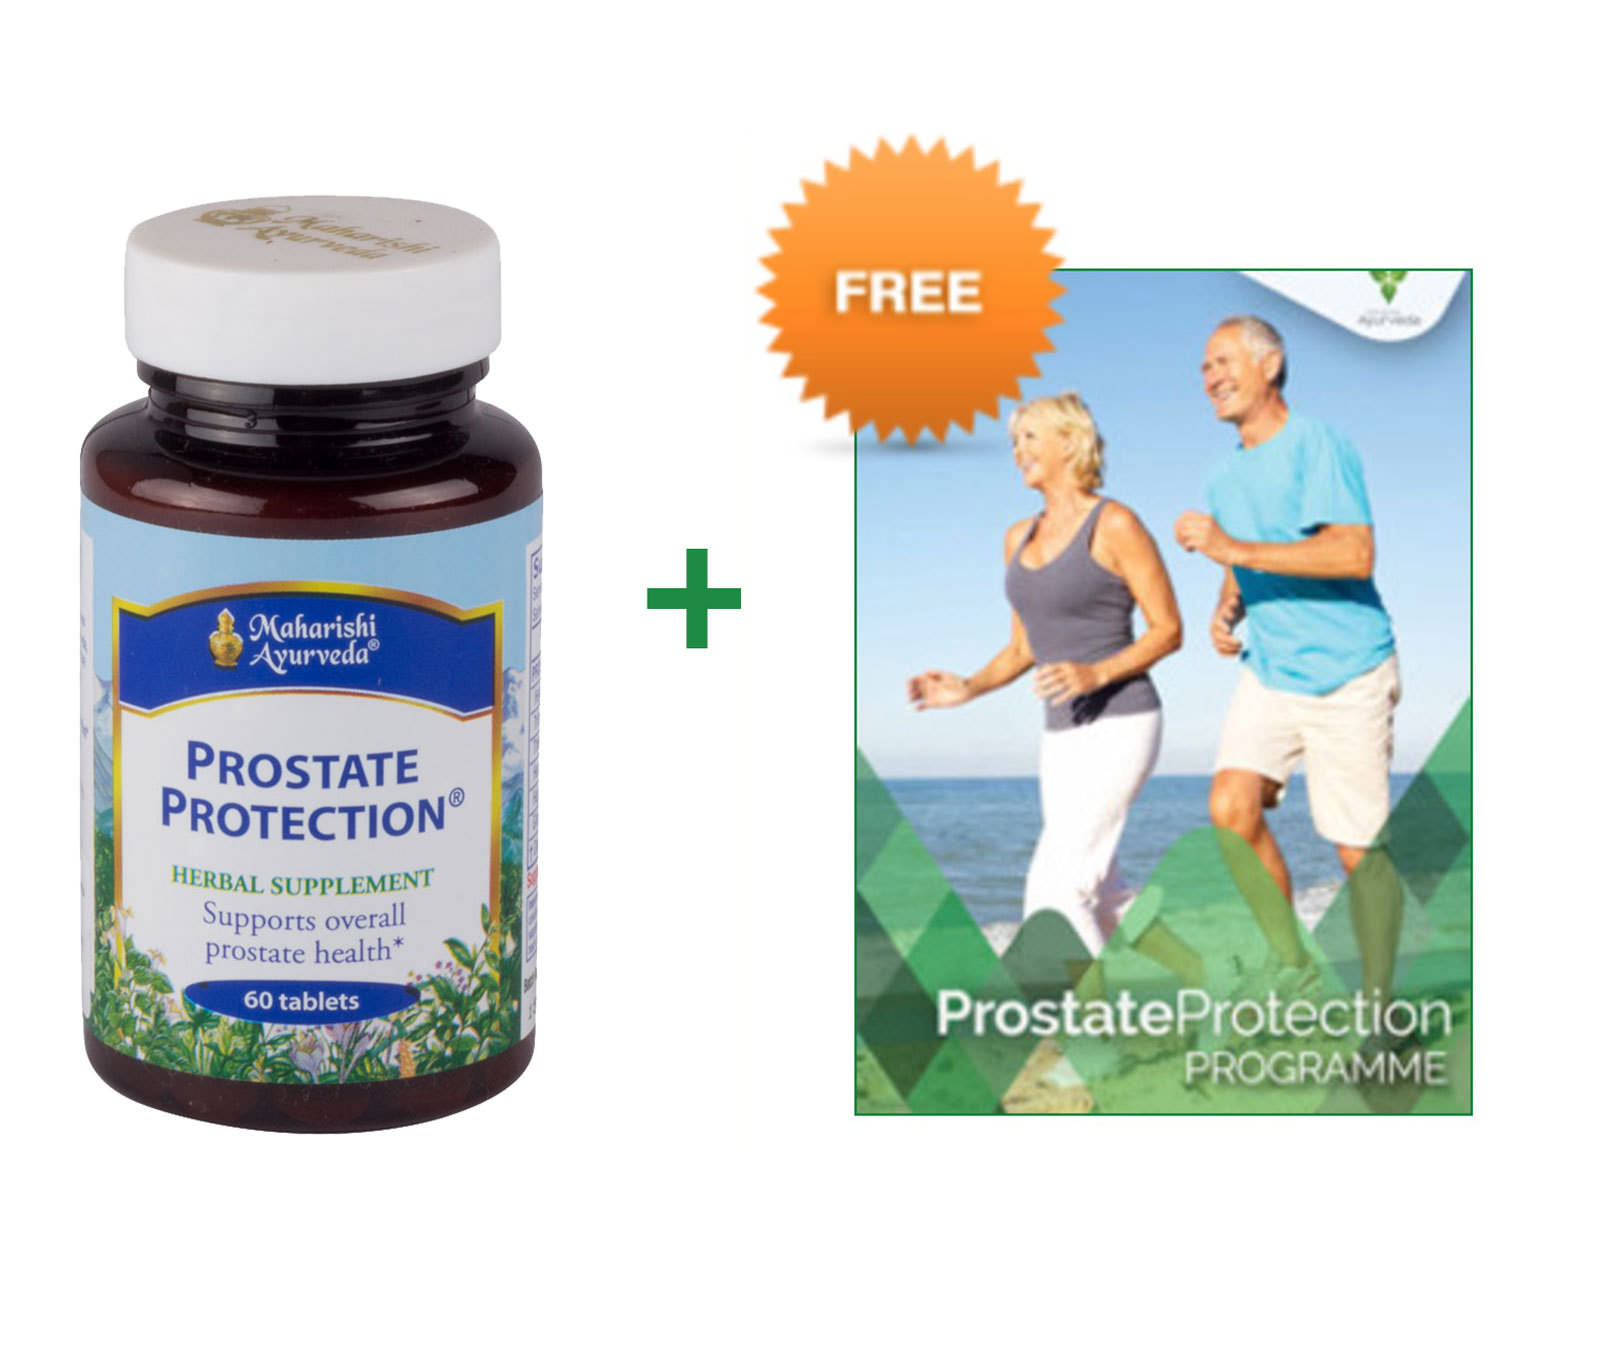 Prostate Protection Programme